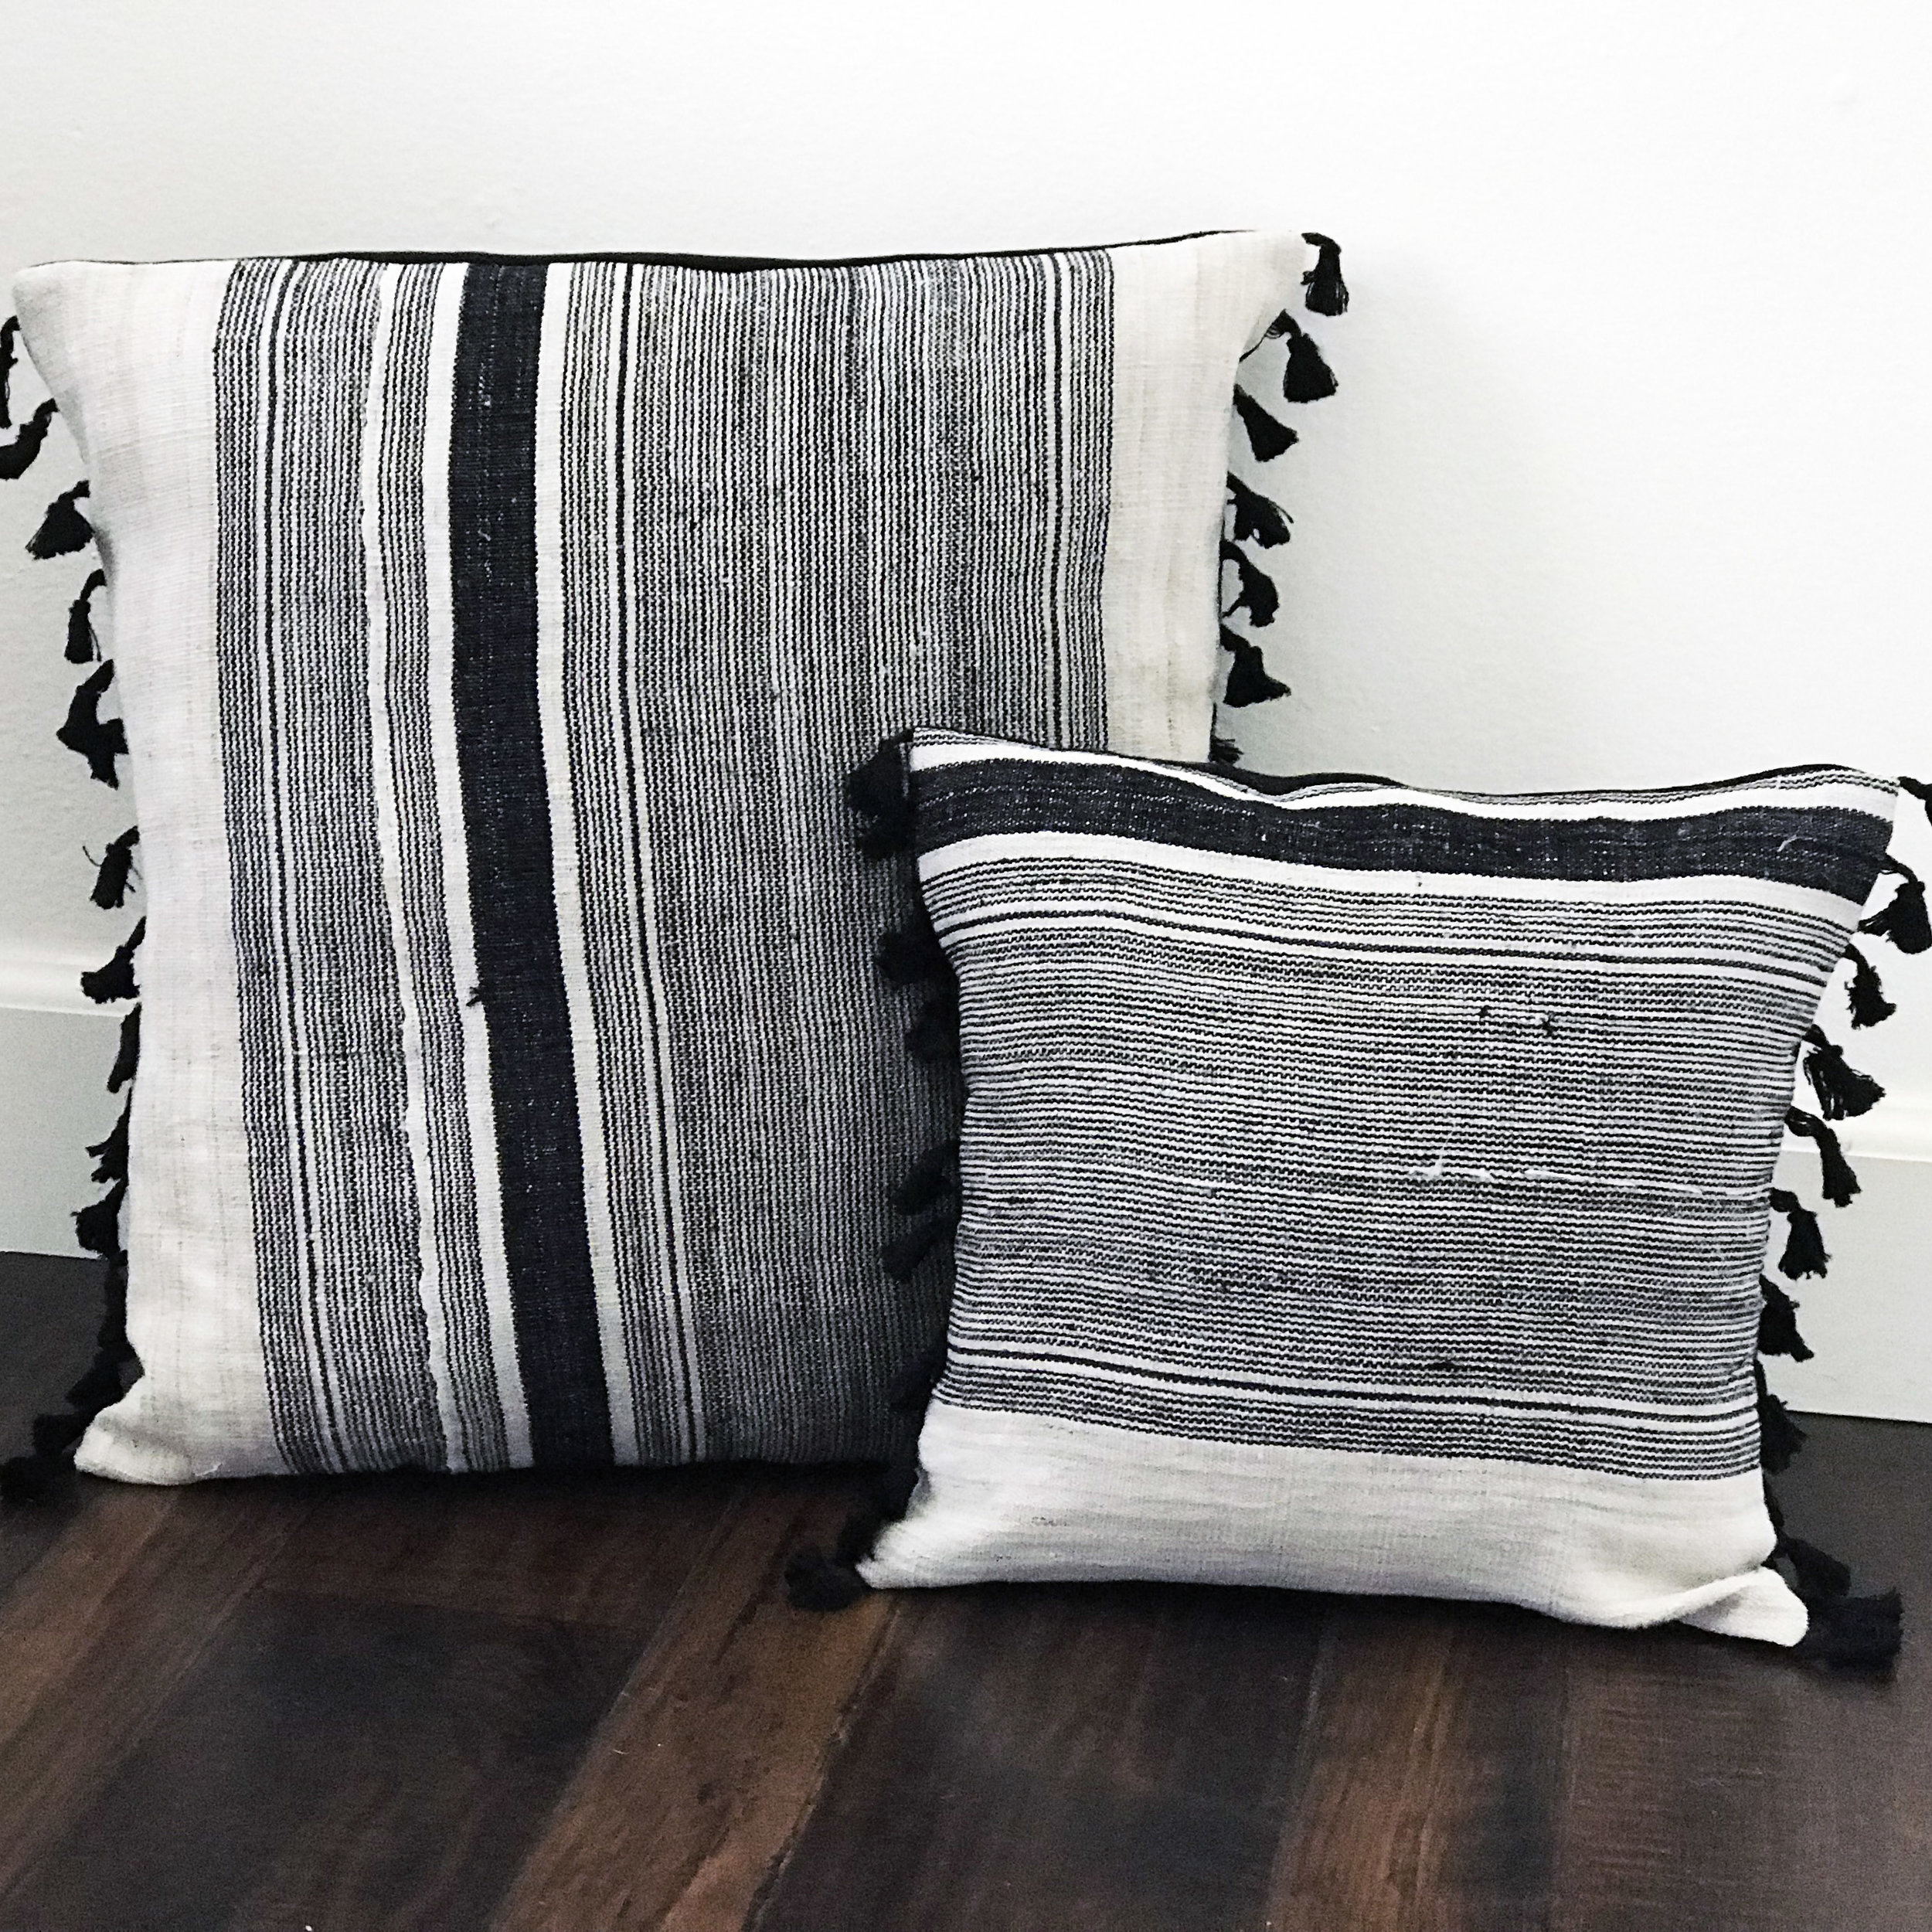 The Dylan Pillow collection is just a small selection of the many pillow styles we have available at The Attic